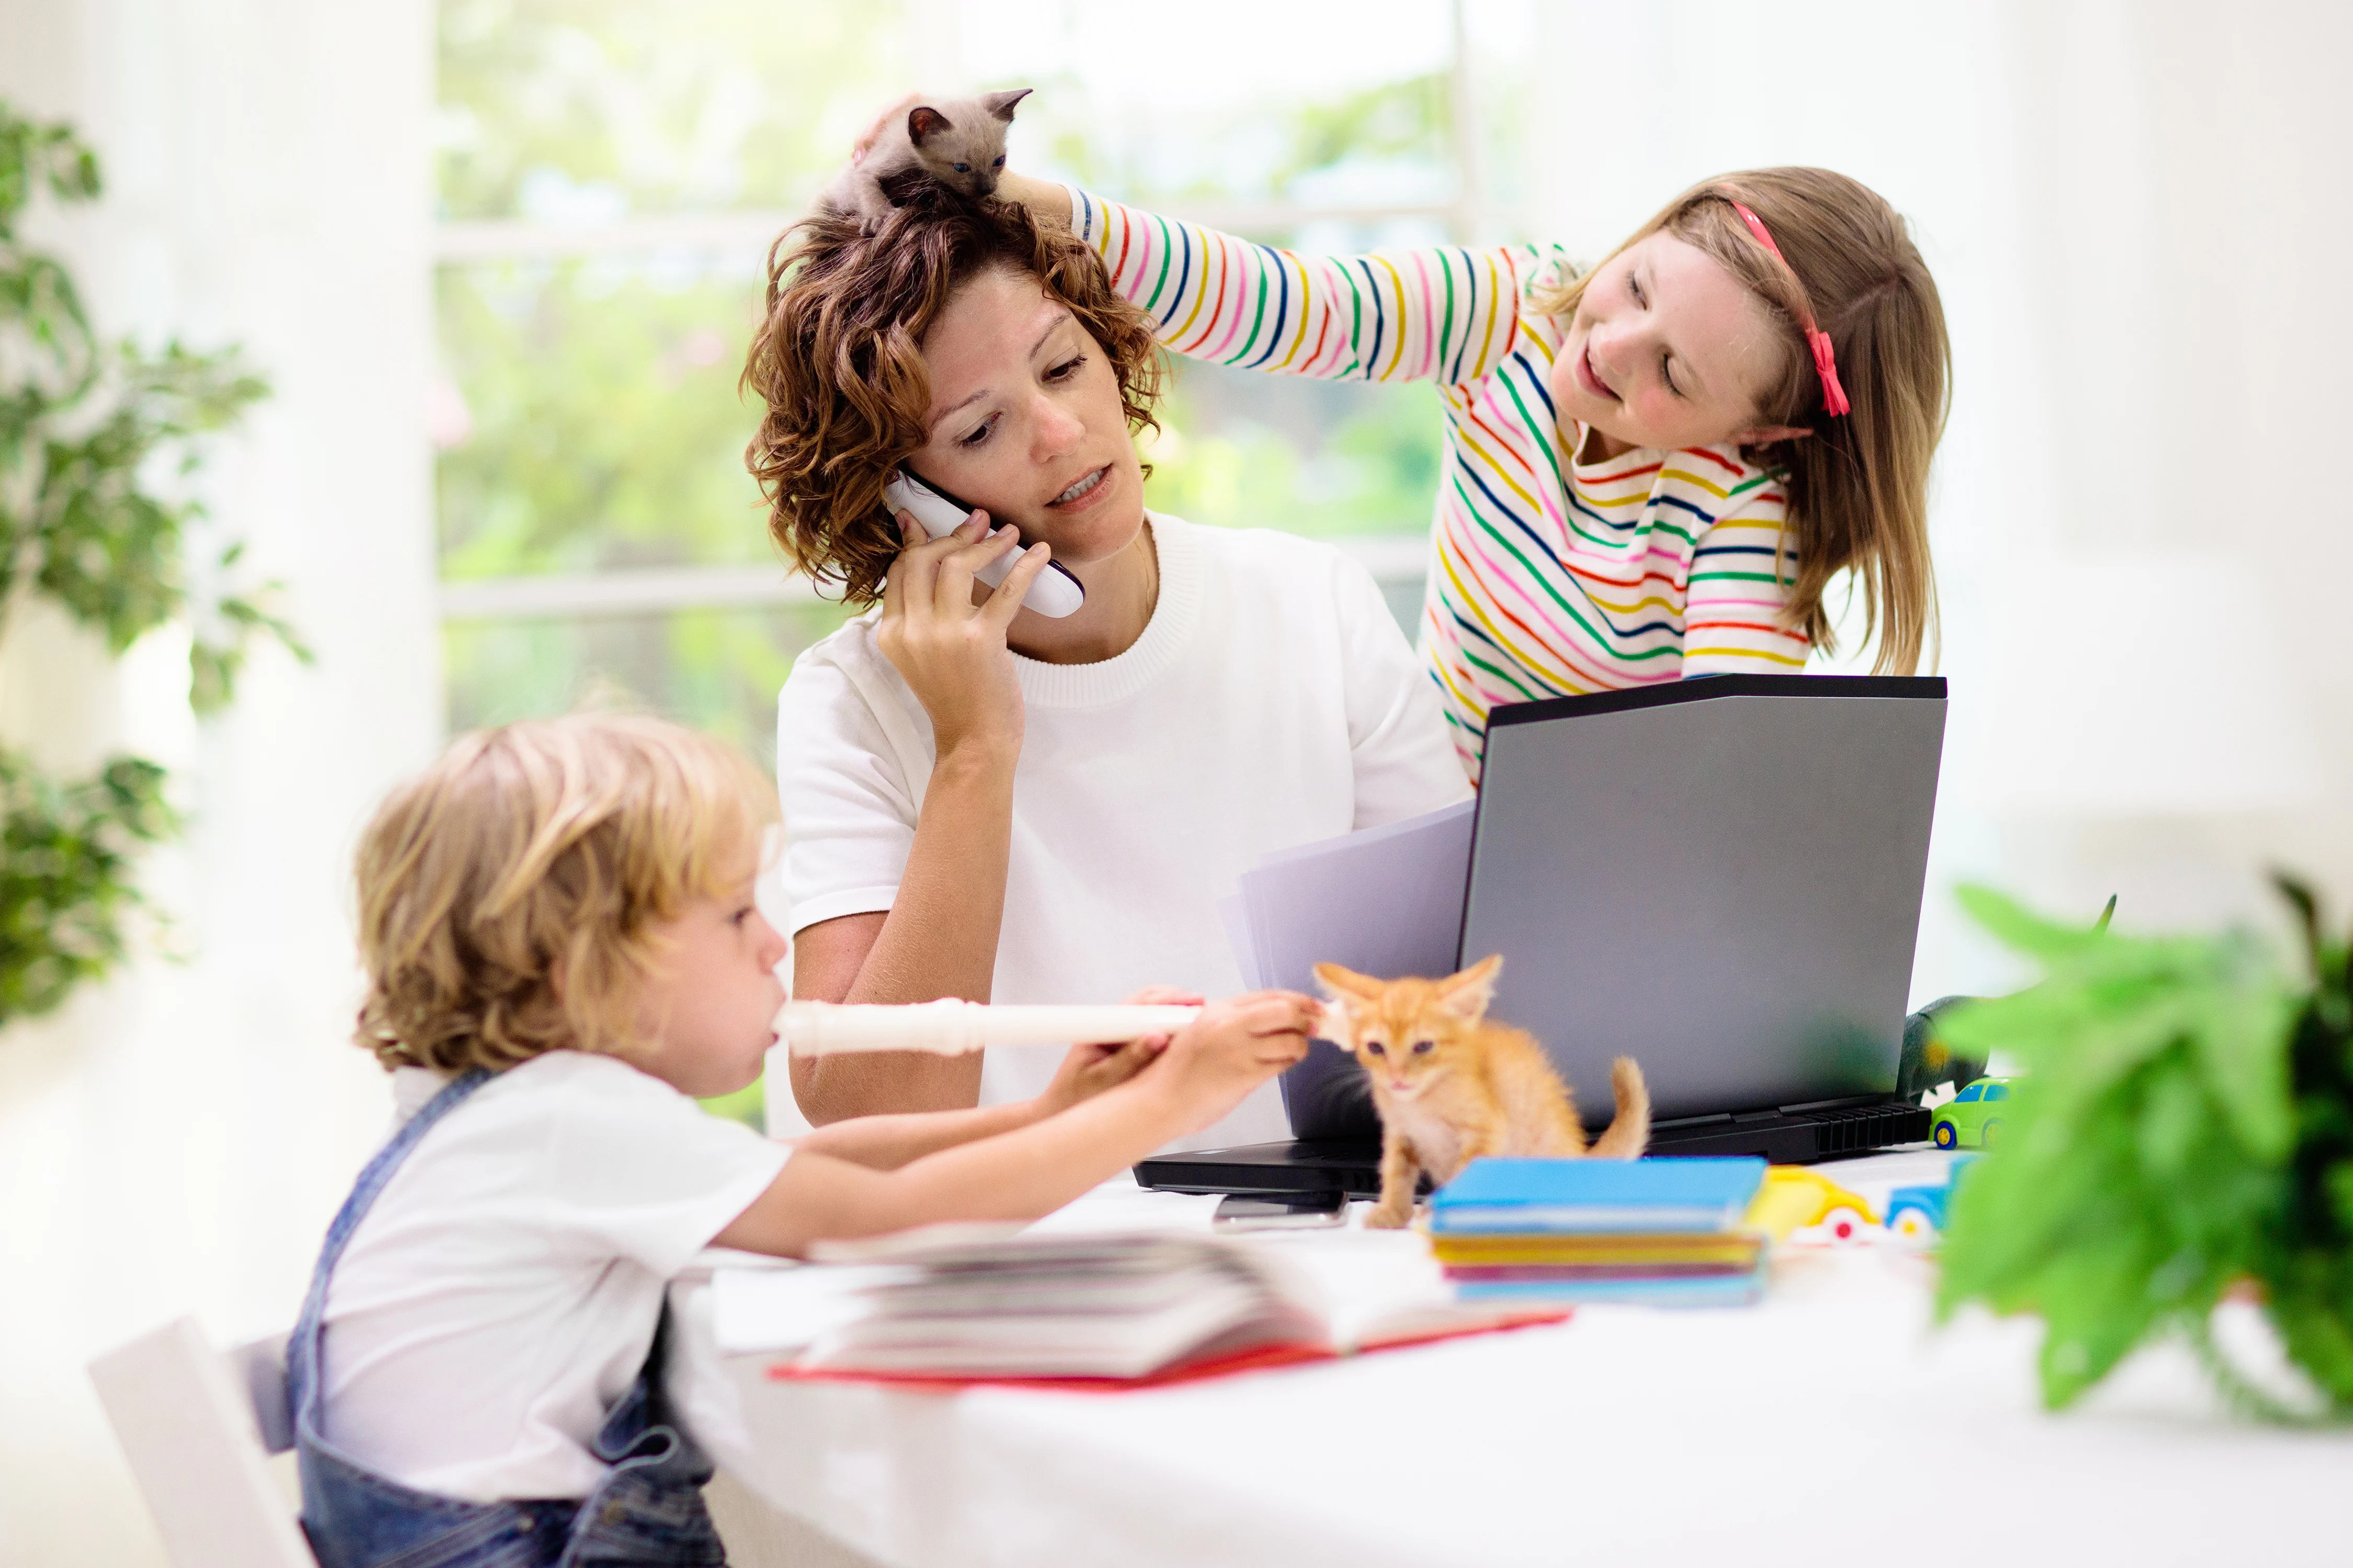 Mother Trying to Work From Home With Two Kids